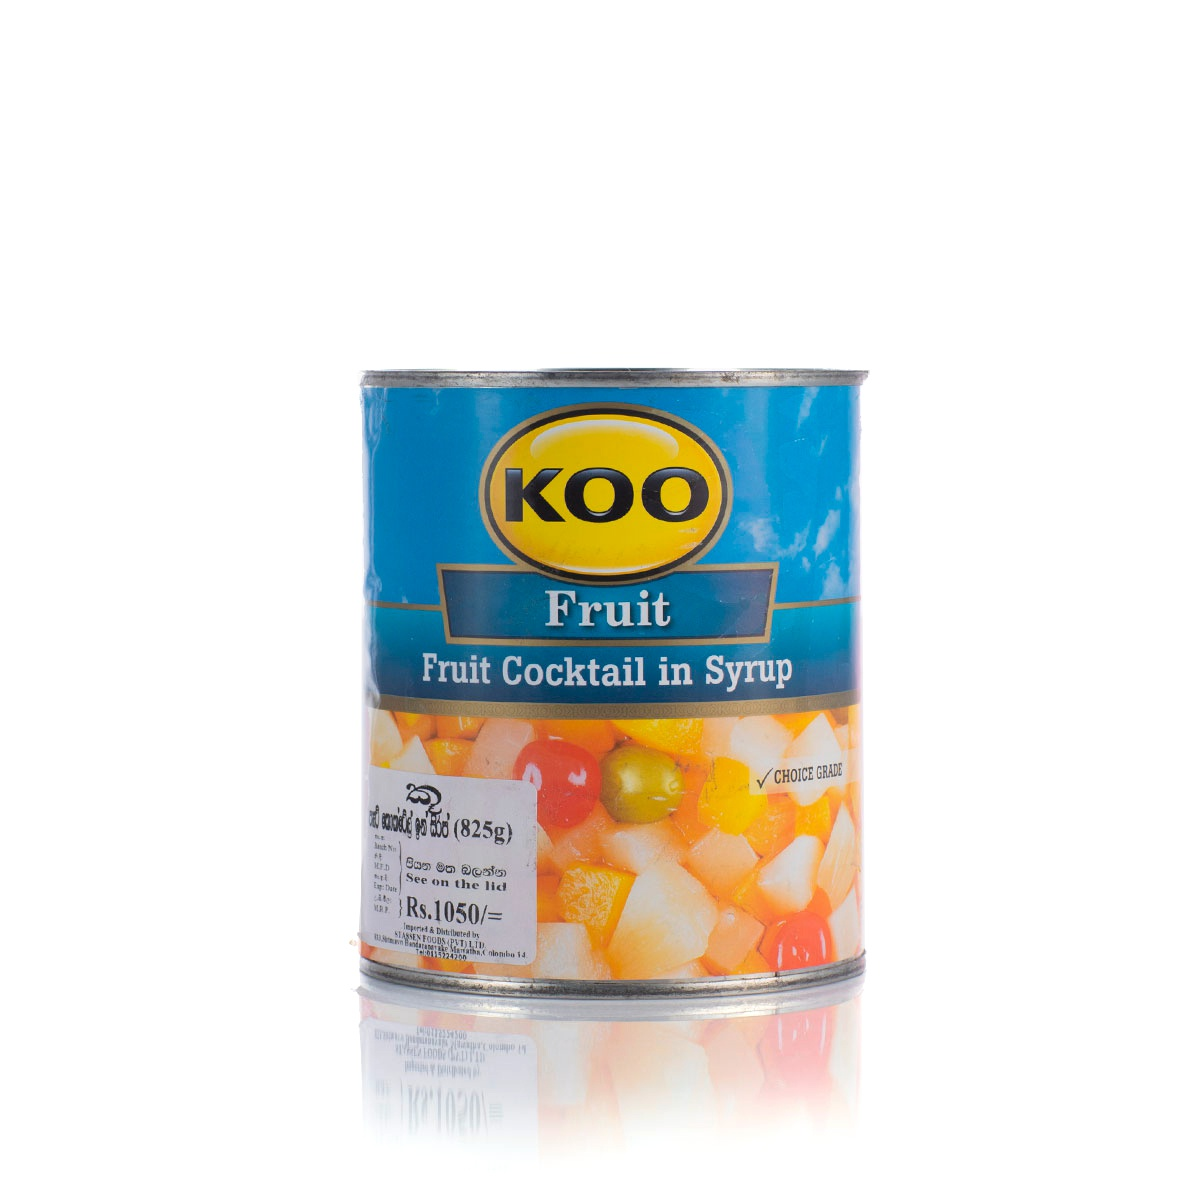 Koo Fruit Cocktail In Syrup 825G - in Sri Lanka